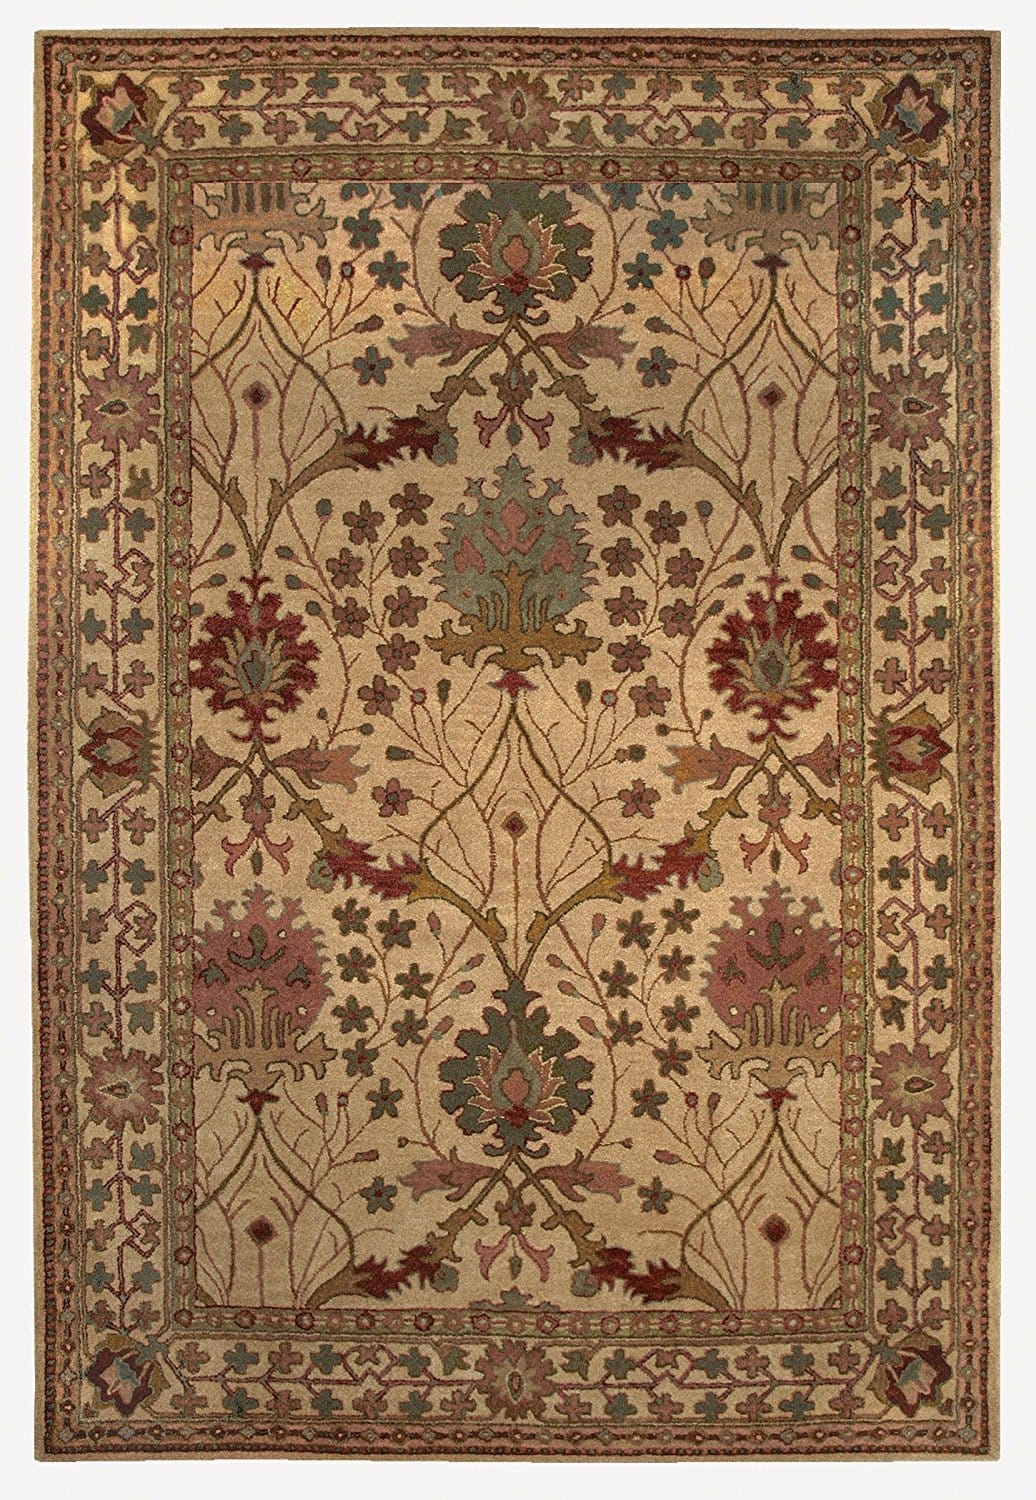 80 Off Linon Wool Rugs 4 X 6 From 20 5